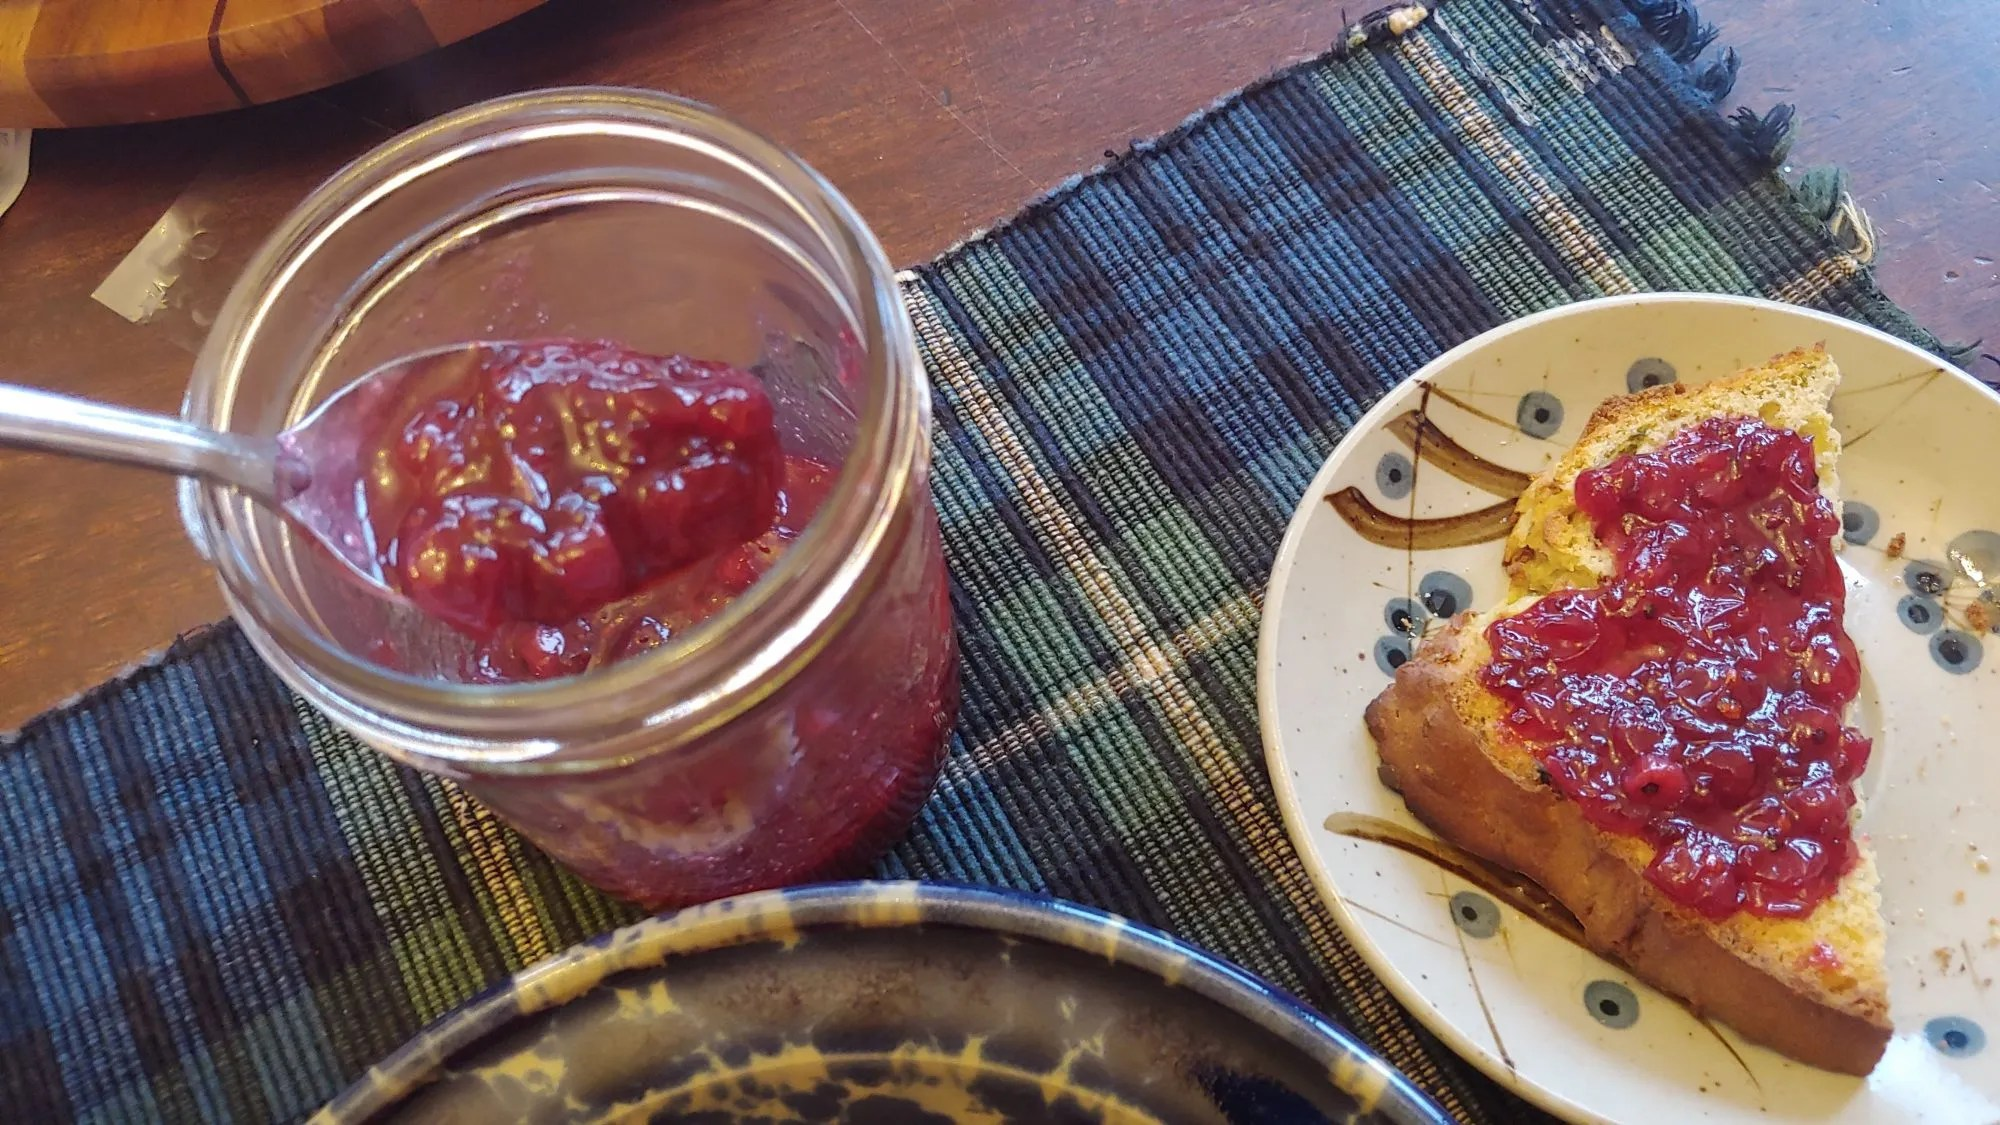 How to Make Quick Berry Jam